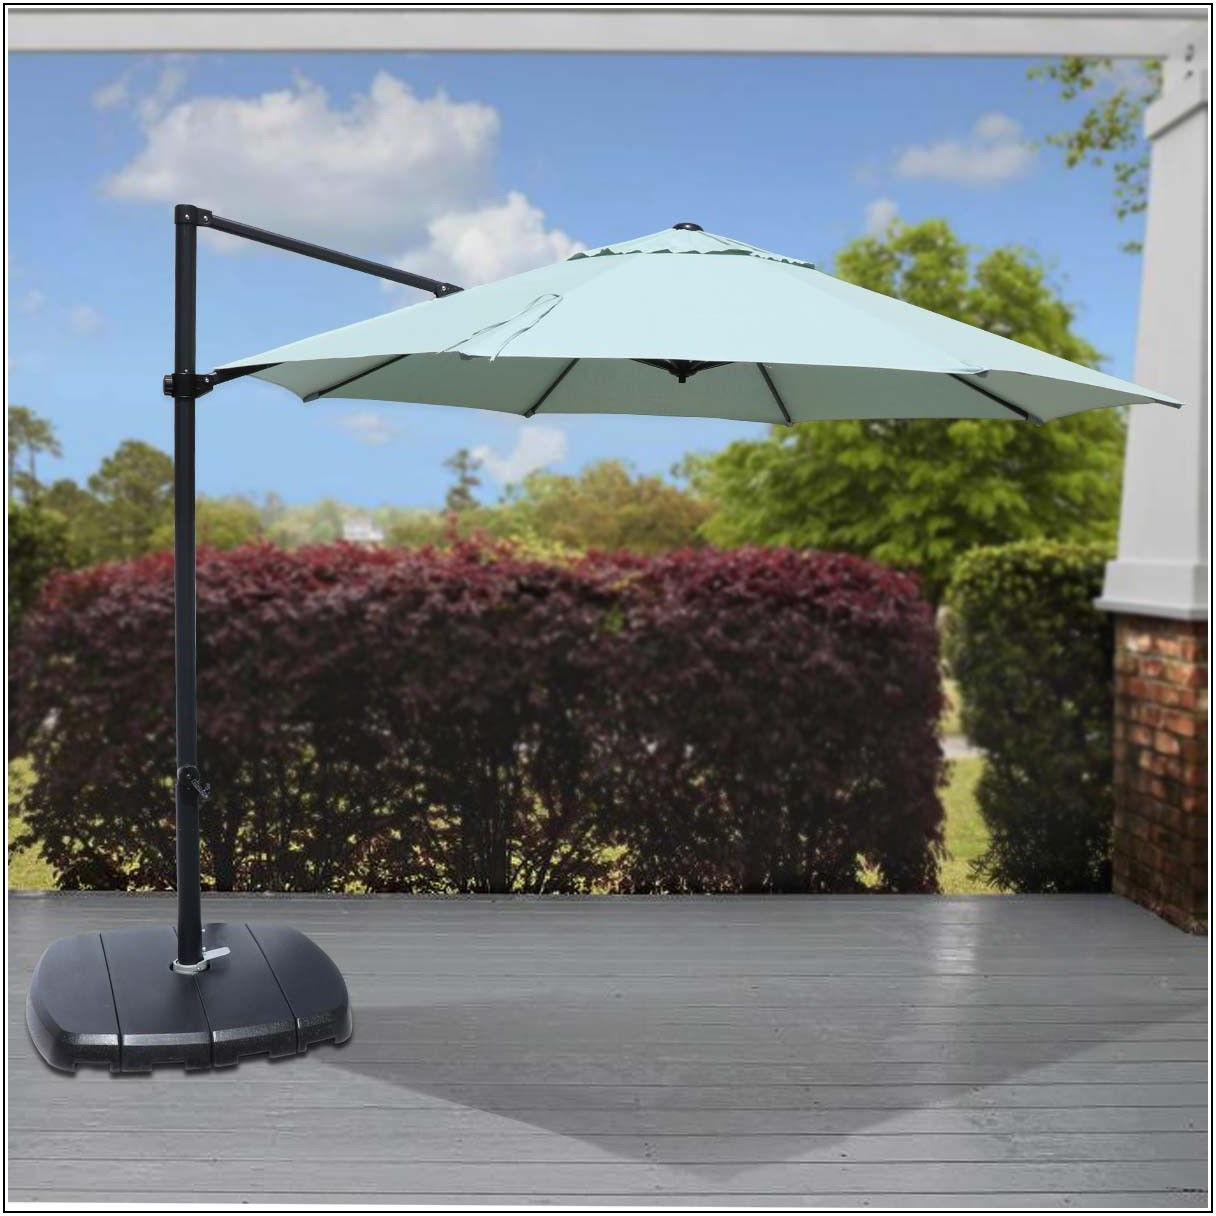 2 Patio Umbrella Base